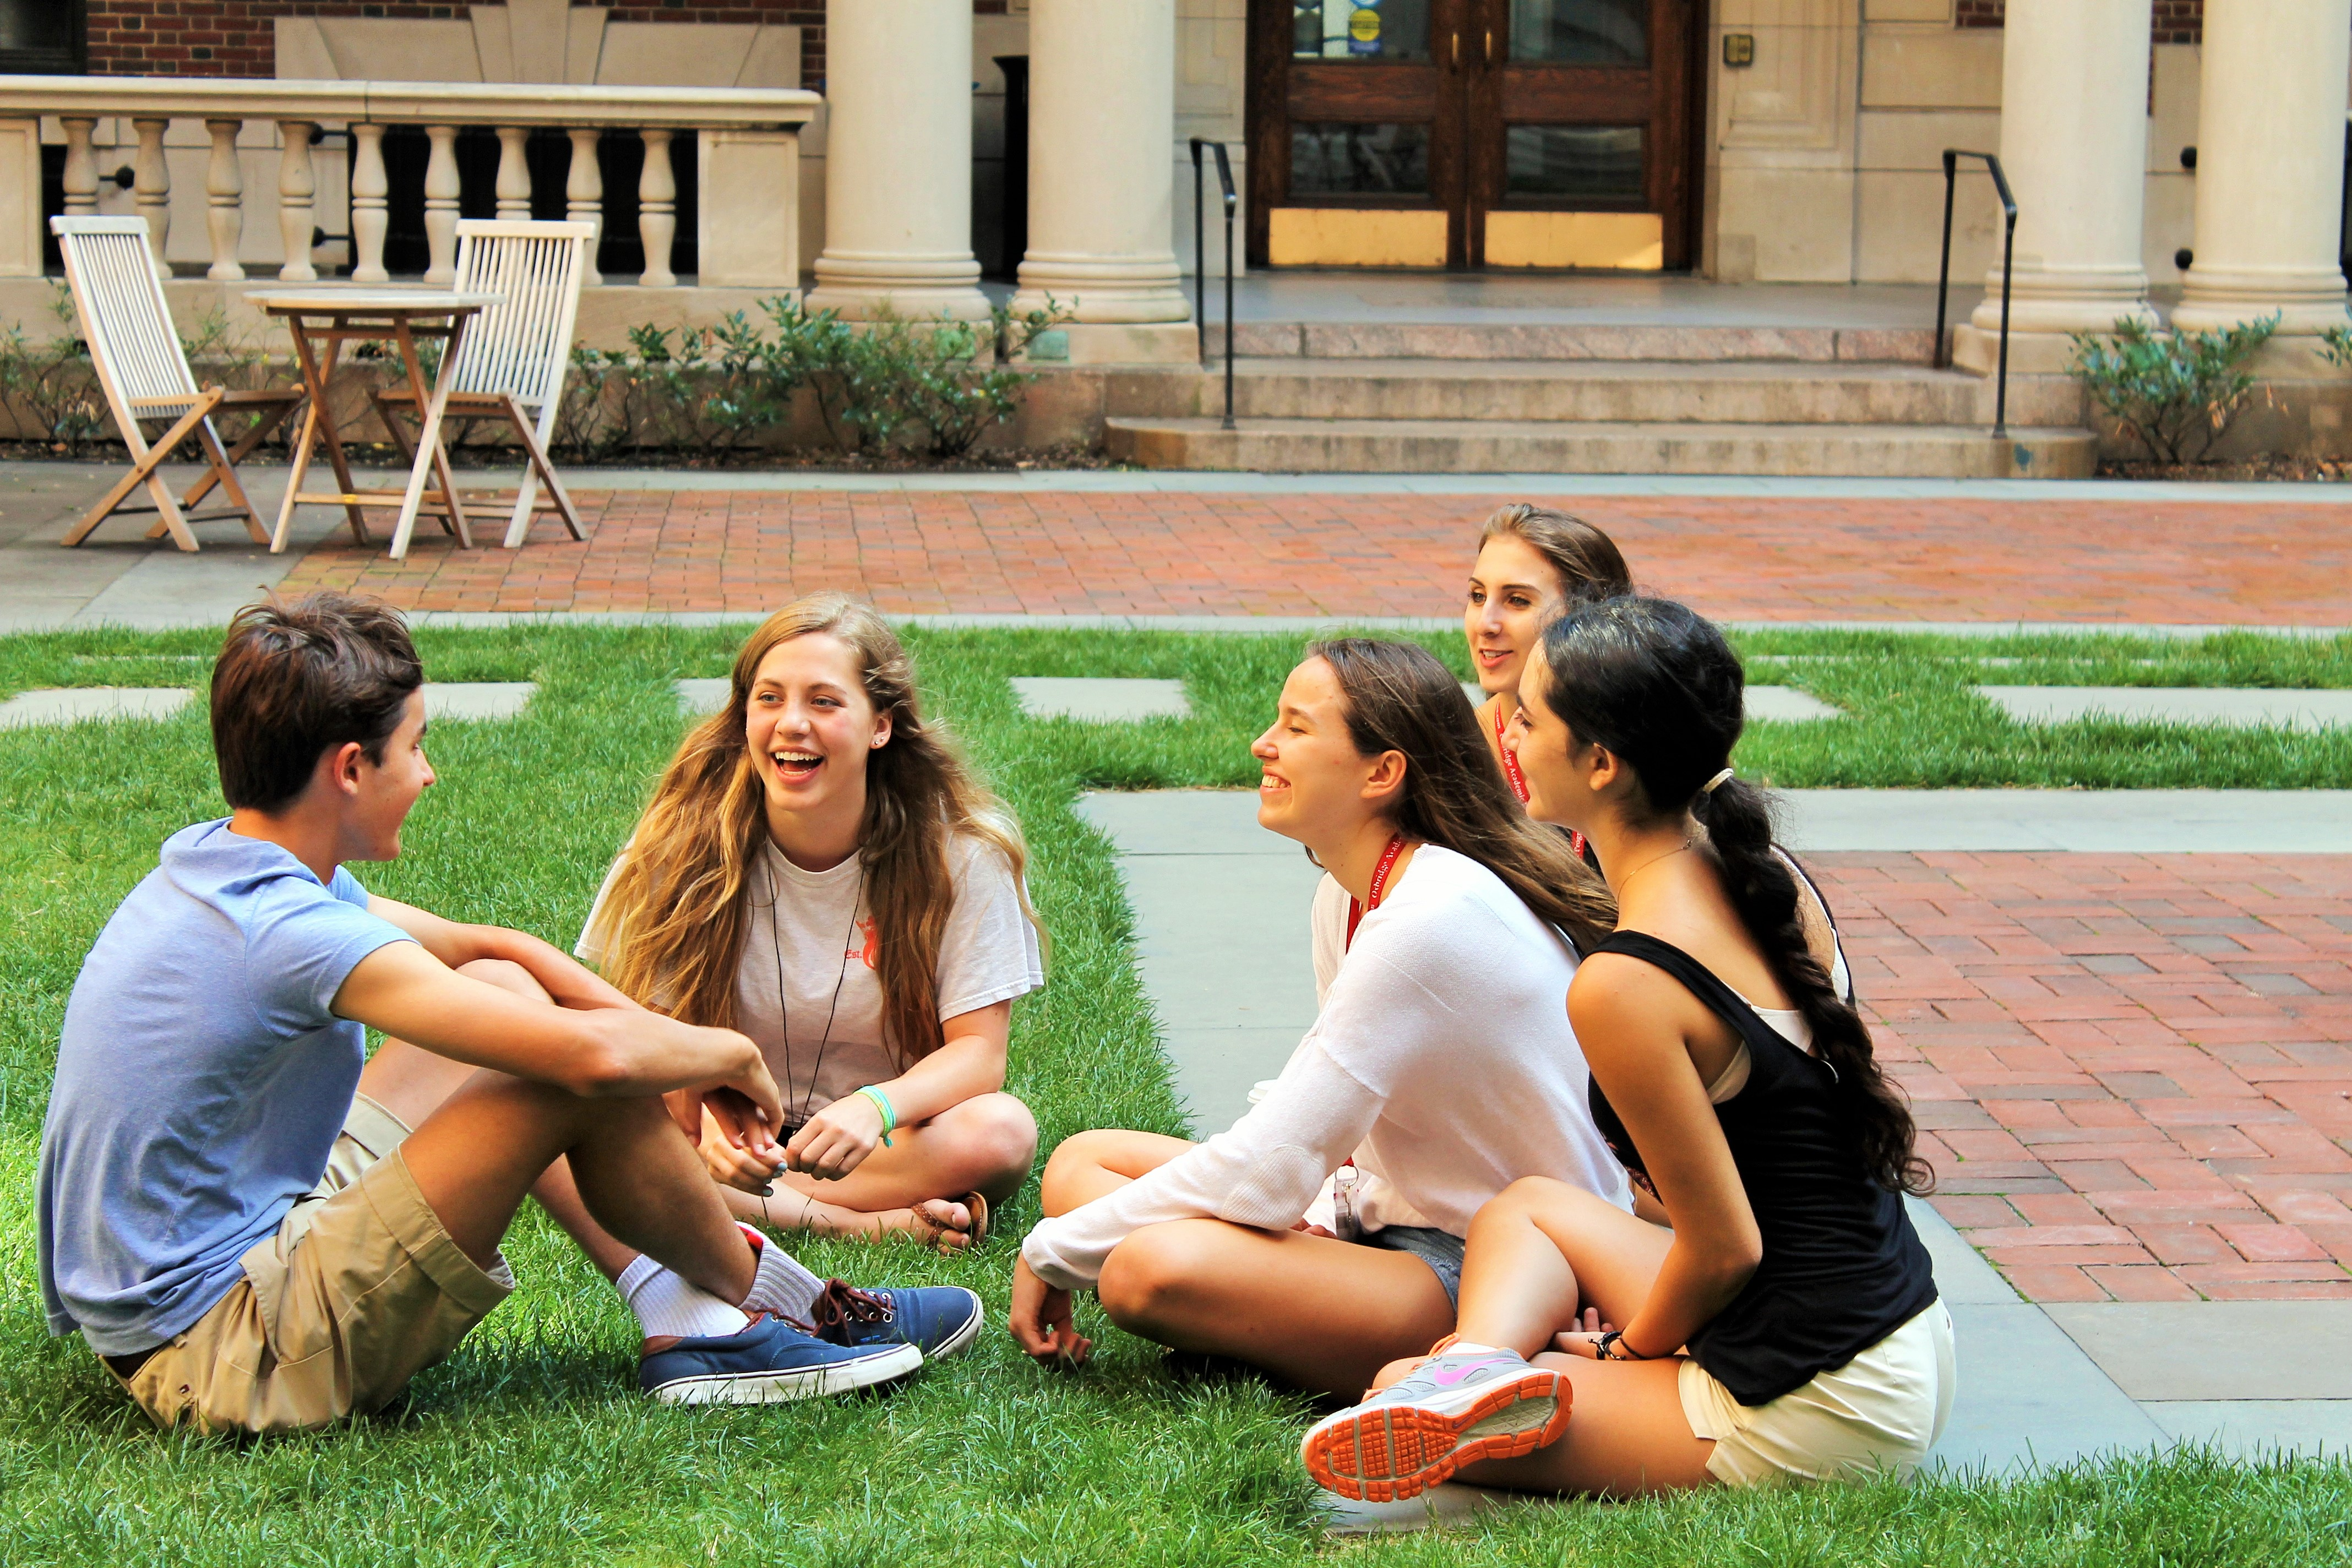 Oxbridge students share their academic success stories while outdoors on campus grounds